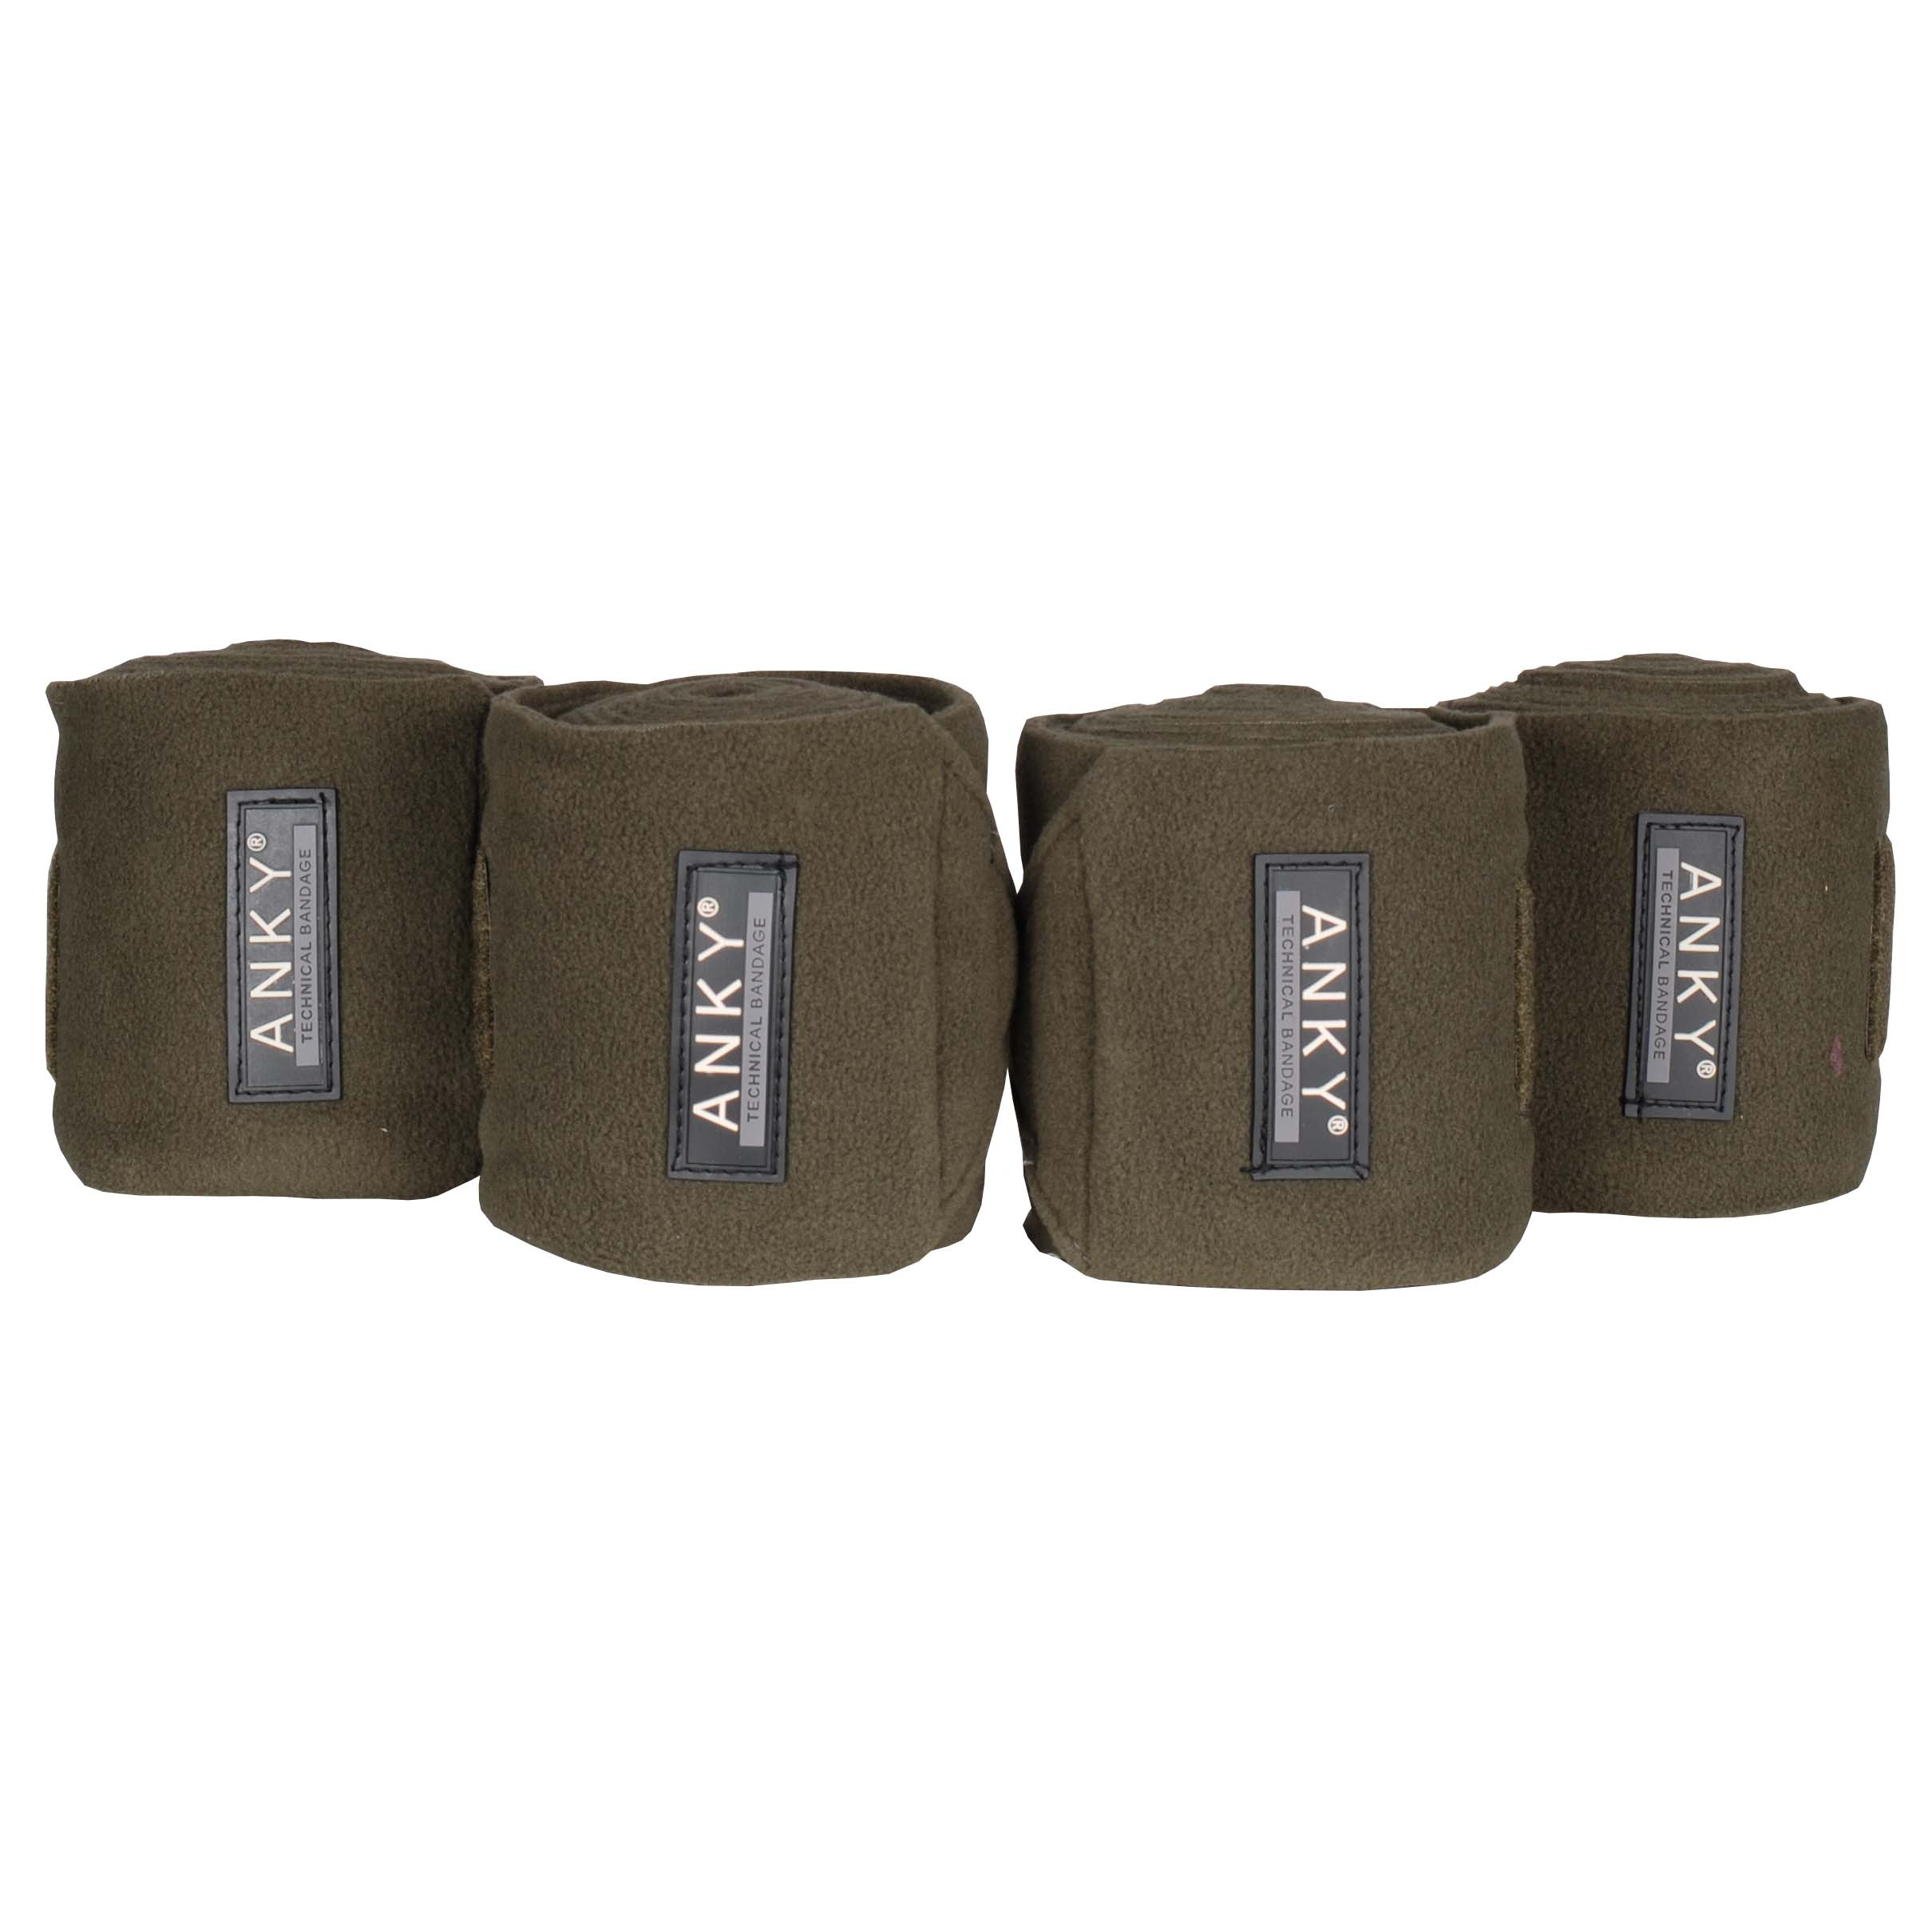 Anky ATB19003 bandages groen